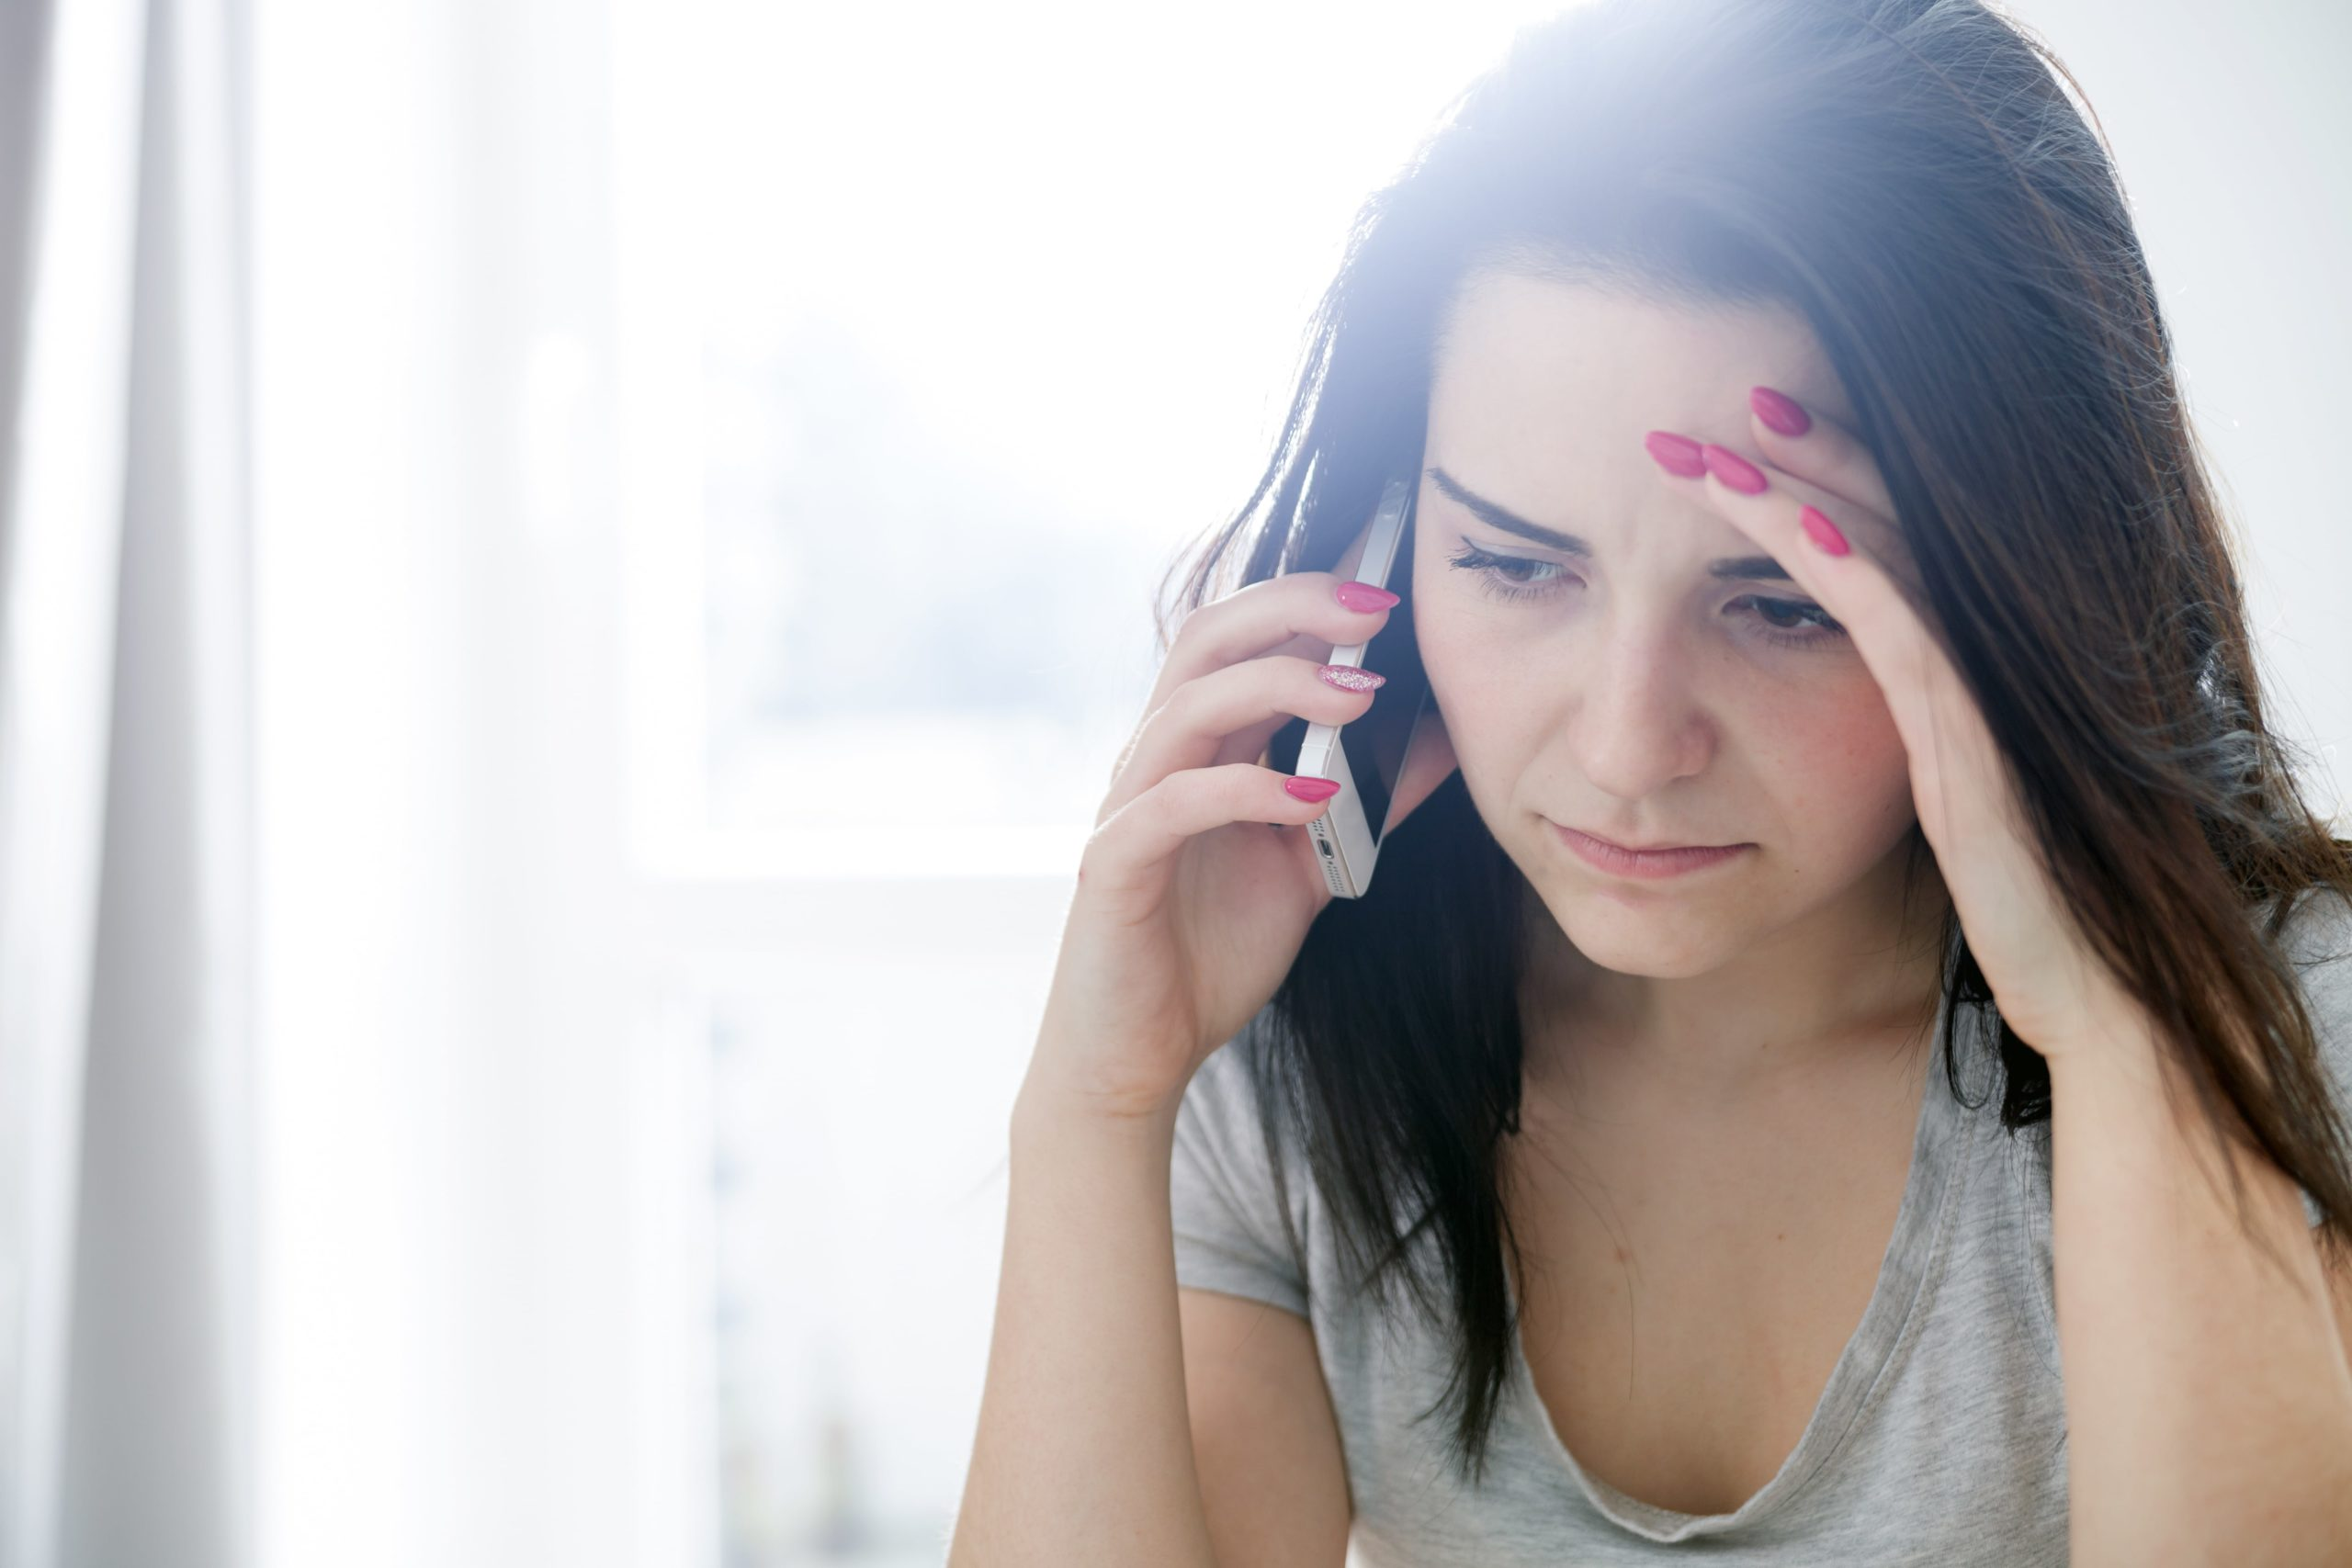 Woman dealing with a nuisance call.